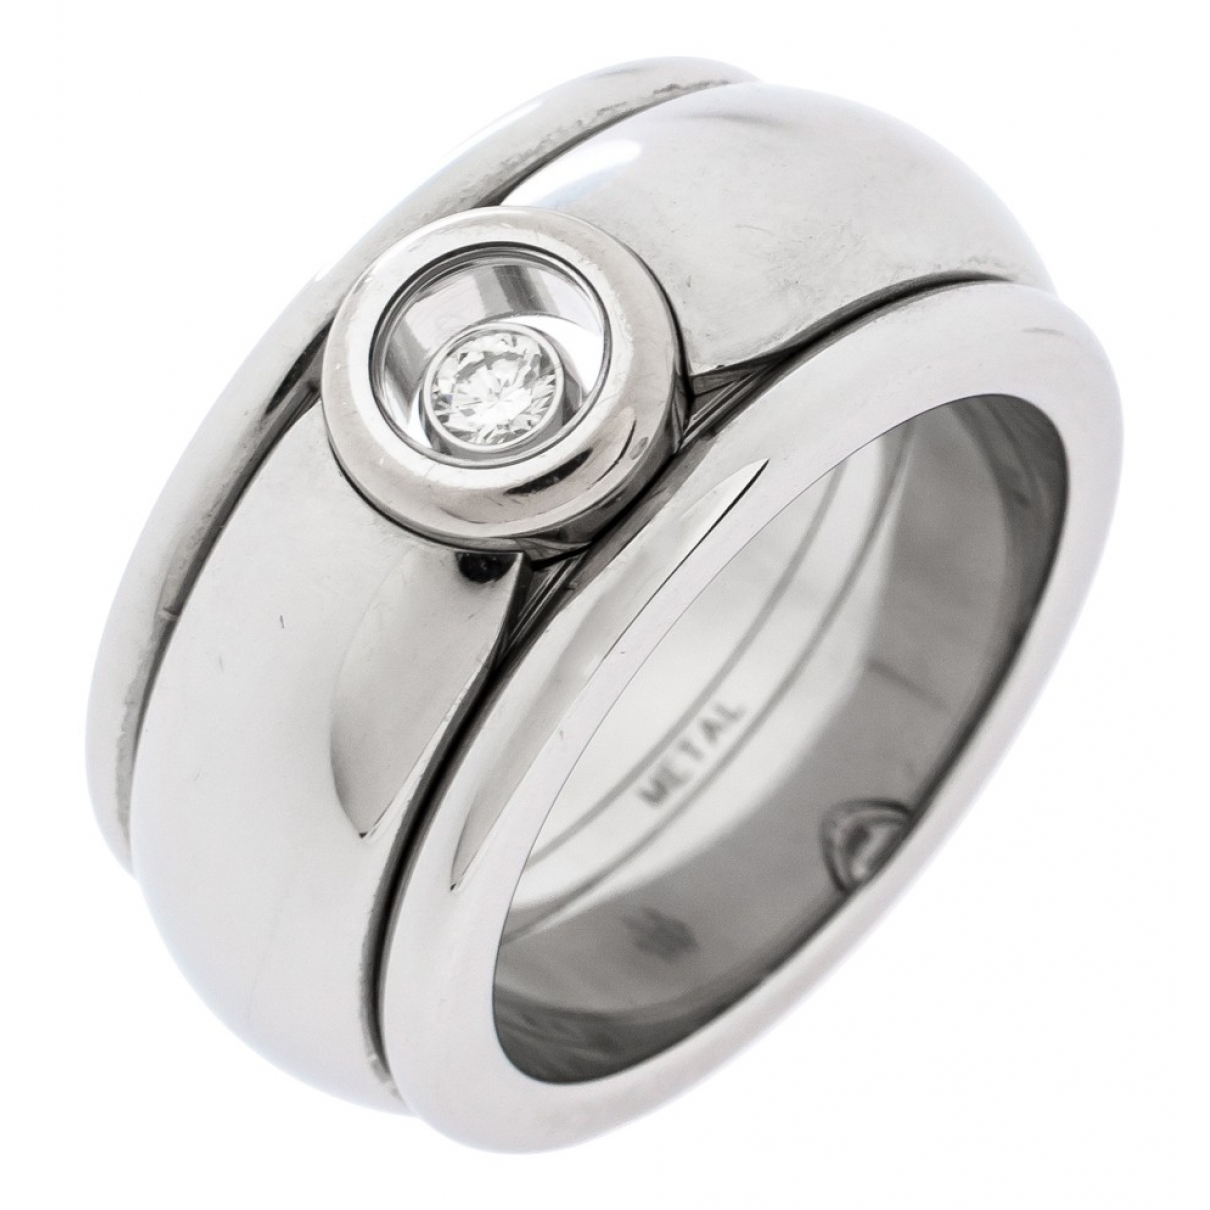 Chopard \N White gold ring for Women 7 ½ US